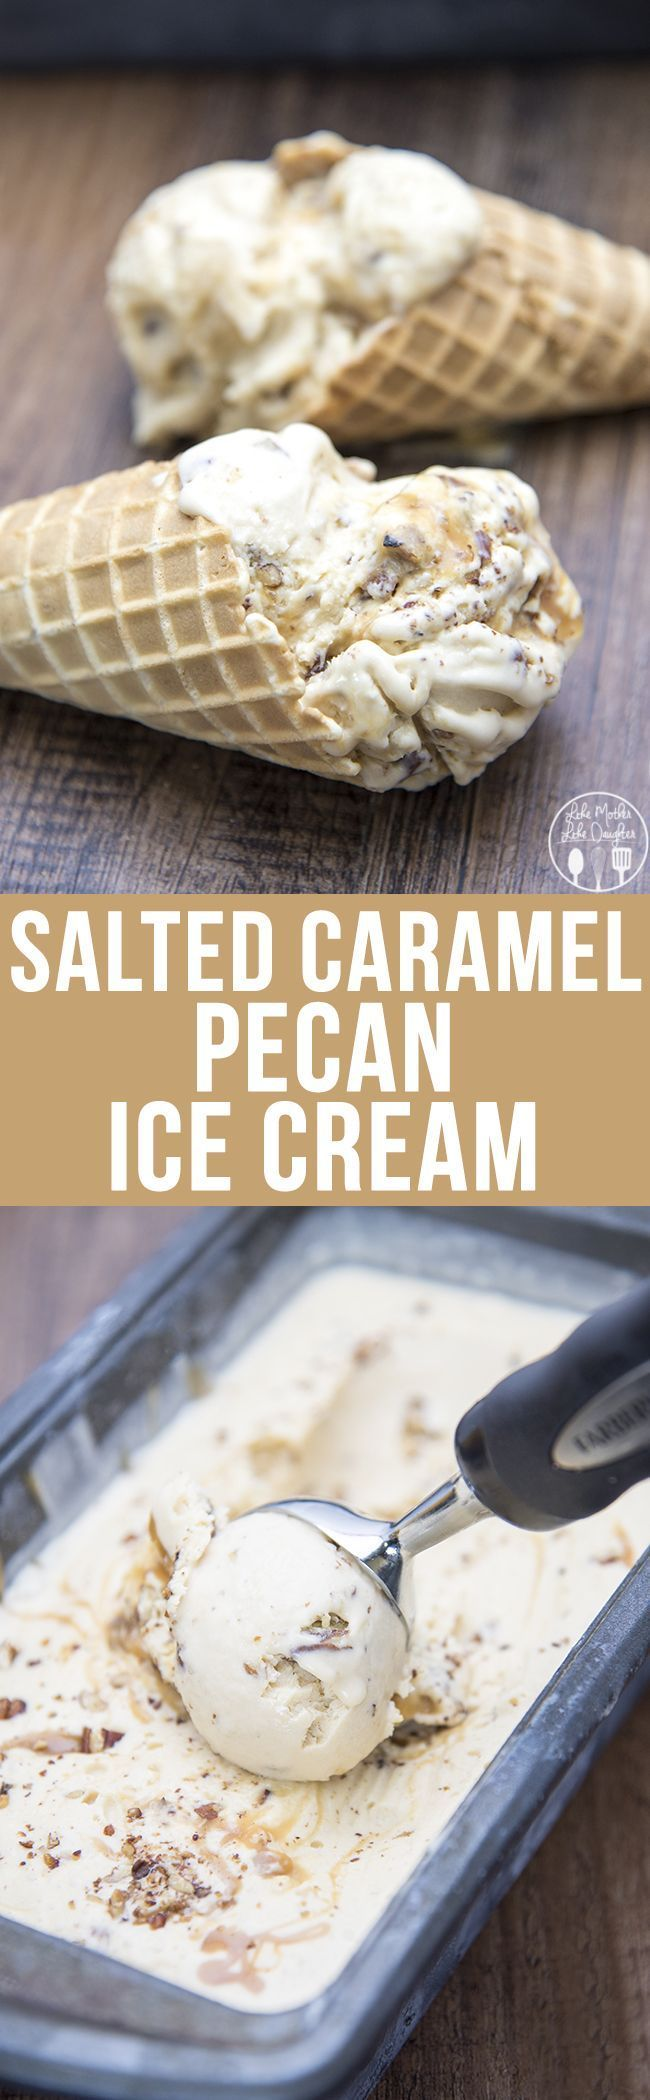 Salted Caramel Pecan Ice Cream - This Salted Caramel Pecan Ice Cream has a salted caramel custard base, swirled with salted caramel swirls and full of crunchy toasted pecans. I'd sub erythritol for sugar to reduce carbs.